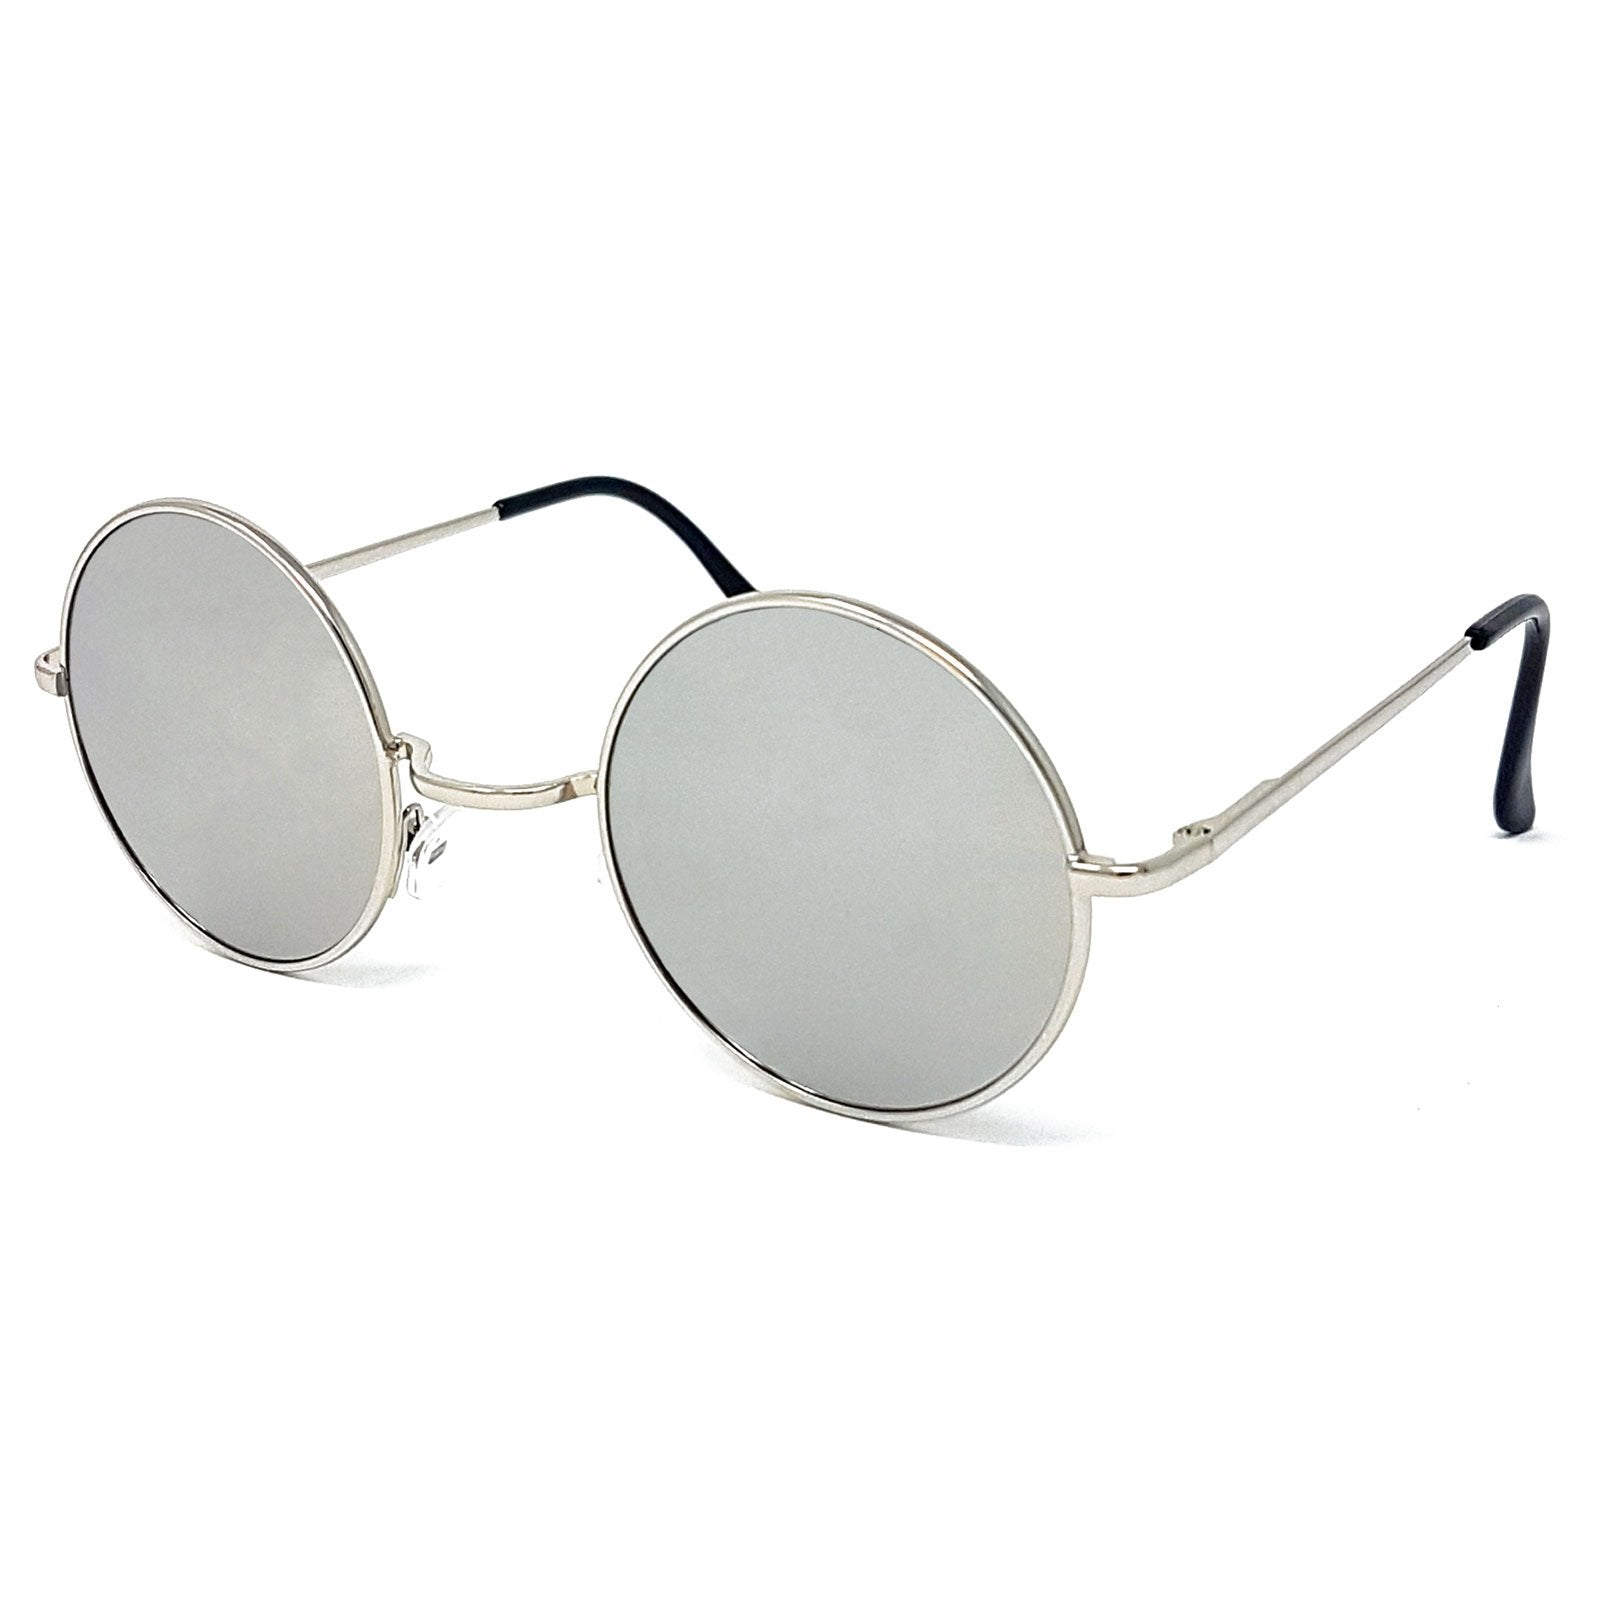 Wholesale Round Lens Sunglasses - Silver Frame, Silver Mirrored Lens